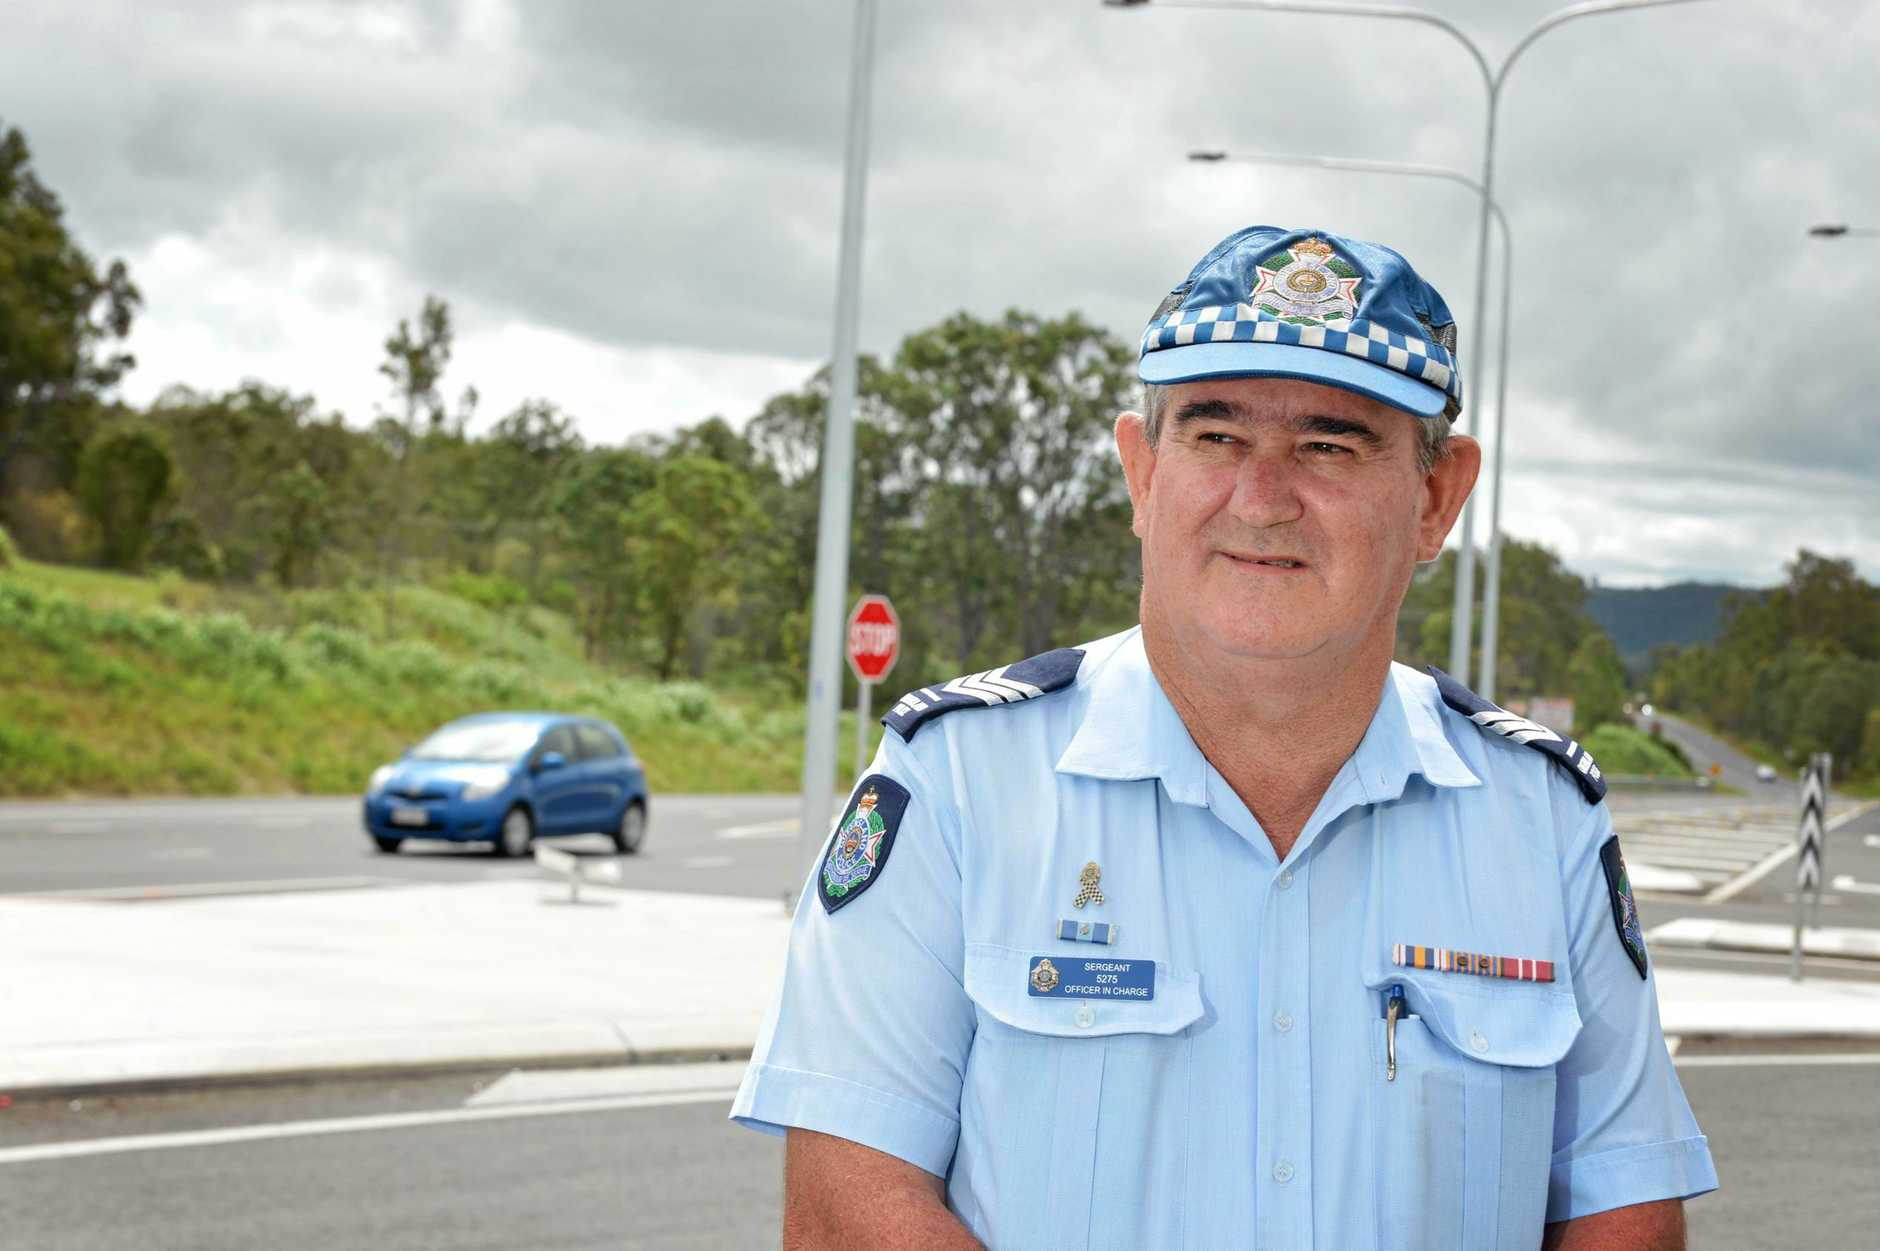 Sergeant Steve Webb at the Gunalda service station near Gympie where there was a recent fatality.